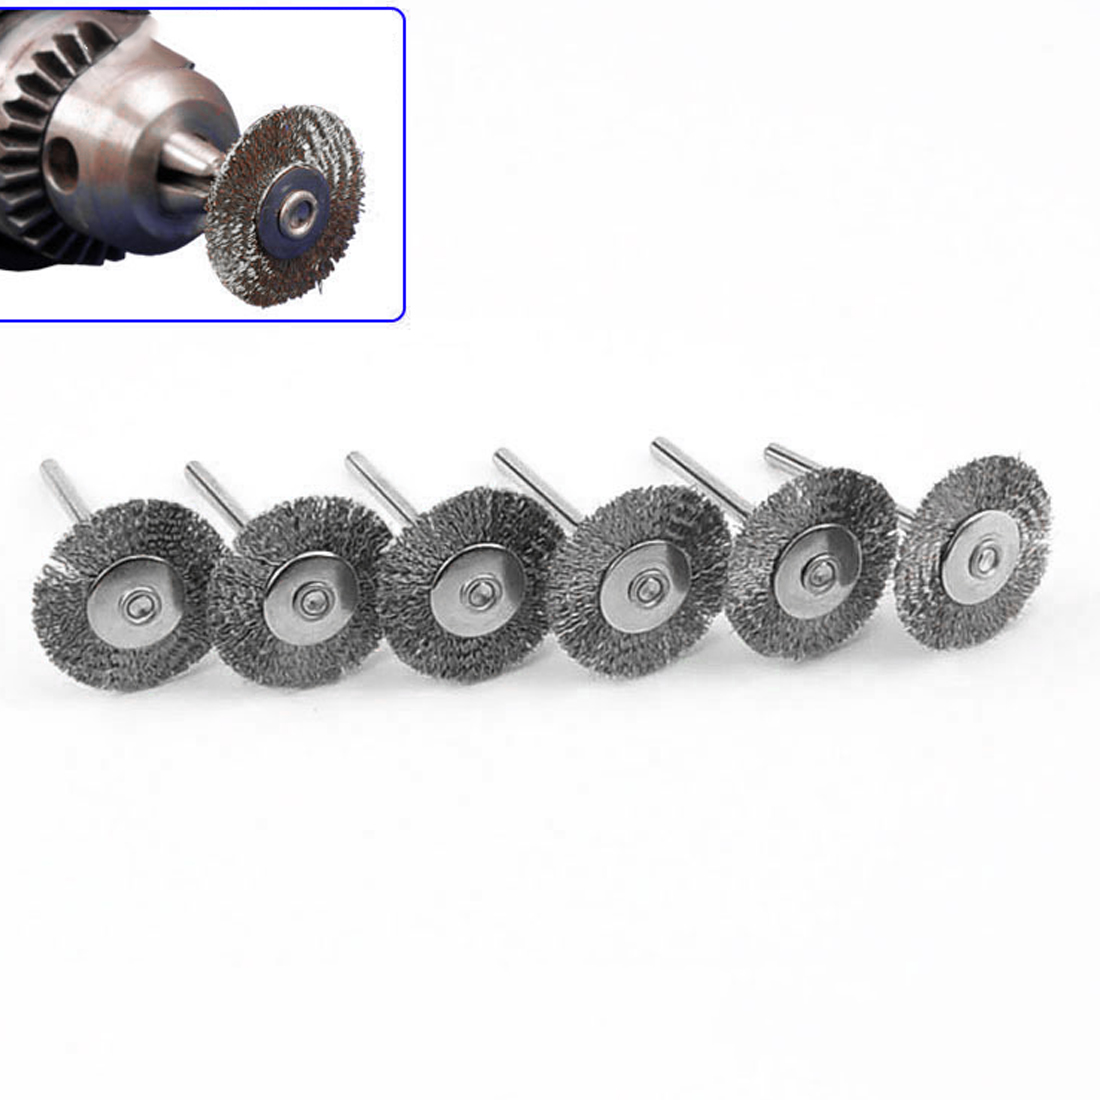 Dremel Accessories 22mm 10Pcs Steel Rotary Brush Dremel Wire Wheel Brushes For Grinder Rotary Tool For Mini Drill Polishing